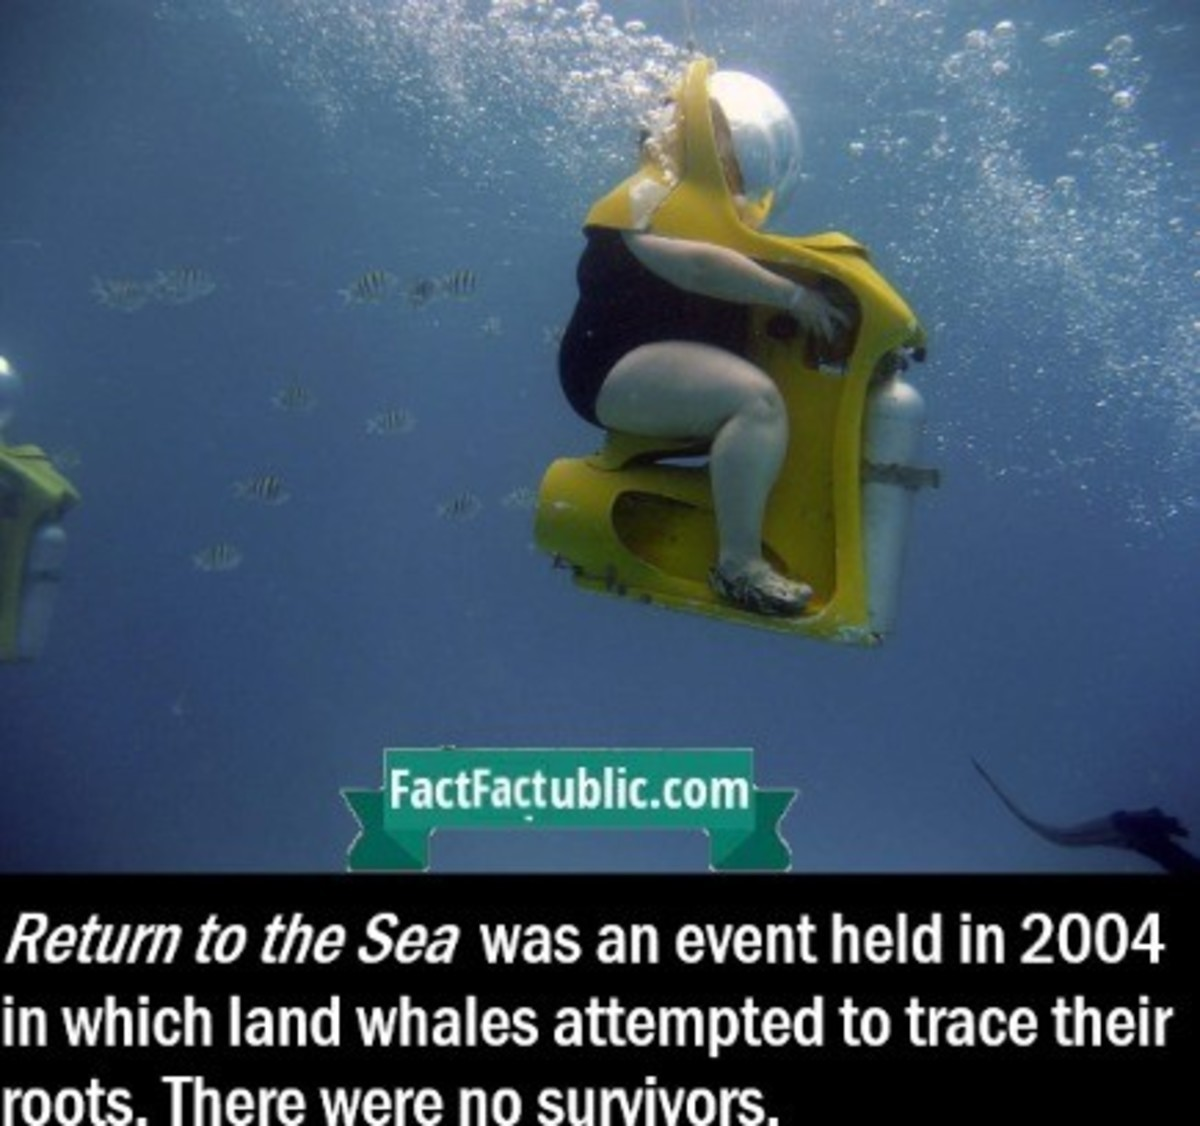 Sad Fact. A fifth of them were killed accidentally by Japanese whaling fleets... That image alone of a fat woman on an underwater bike was enough to make me laugh